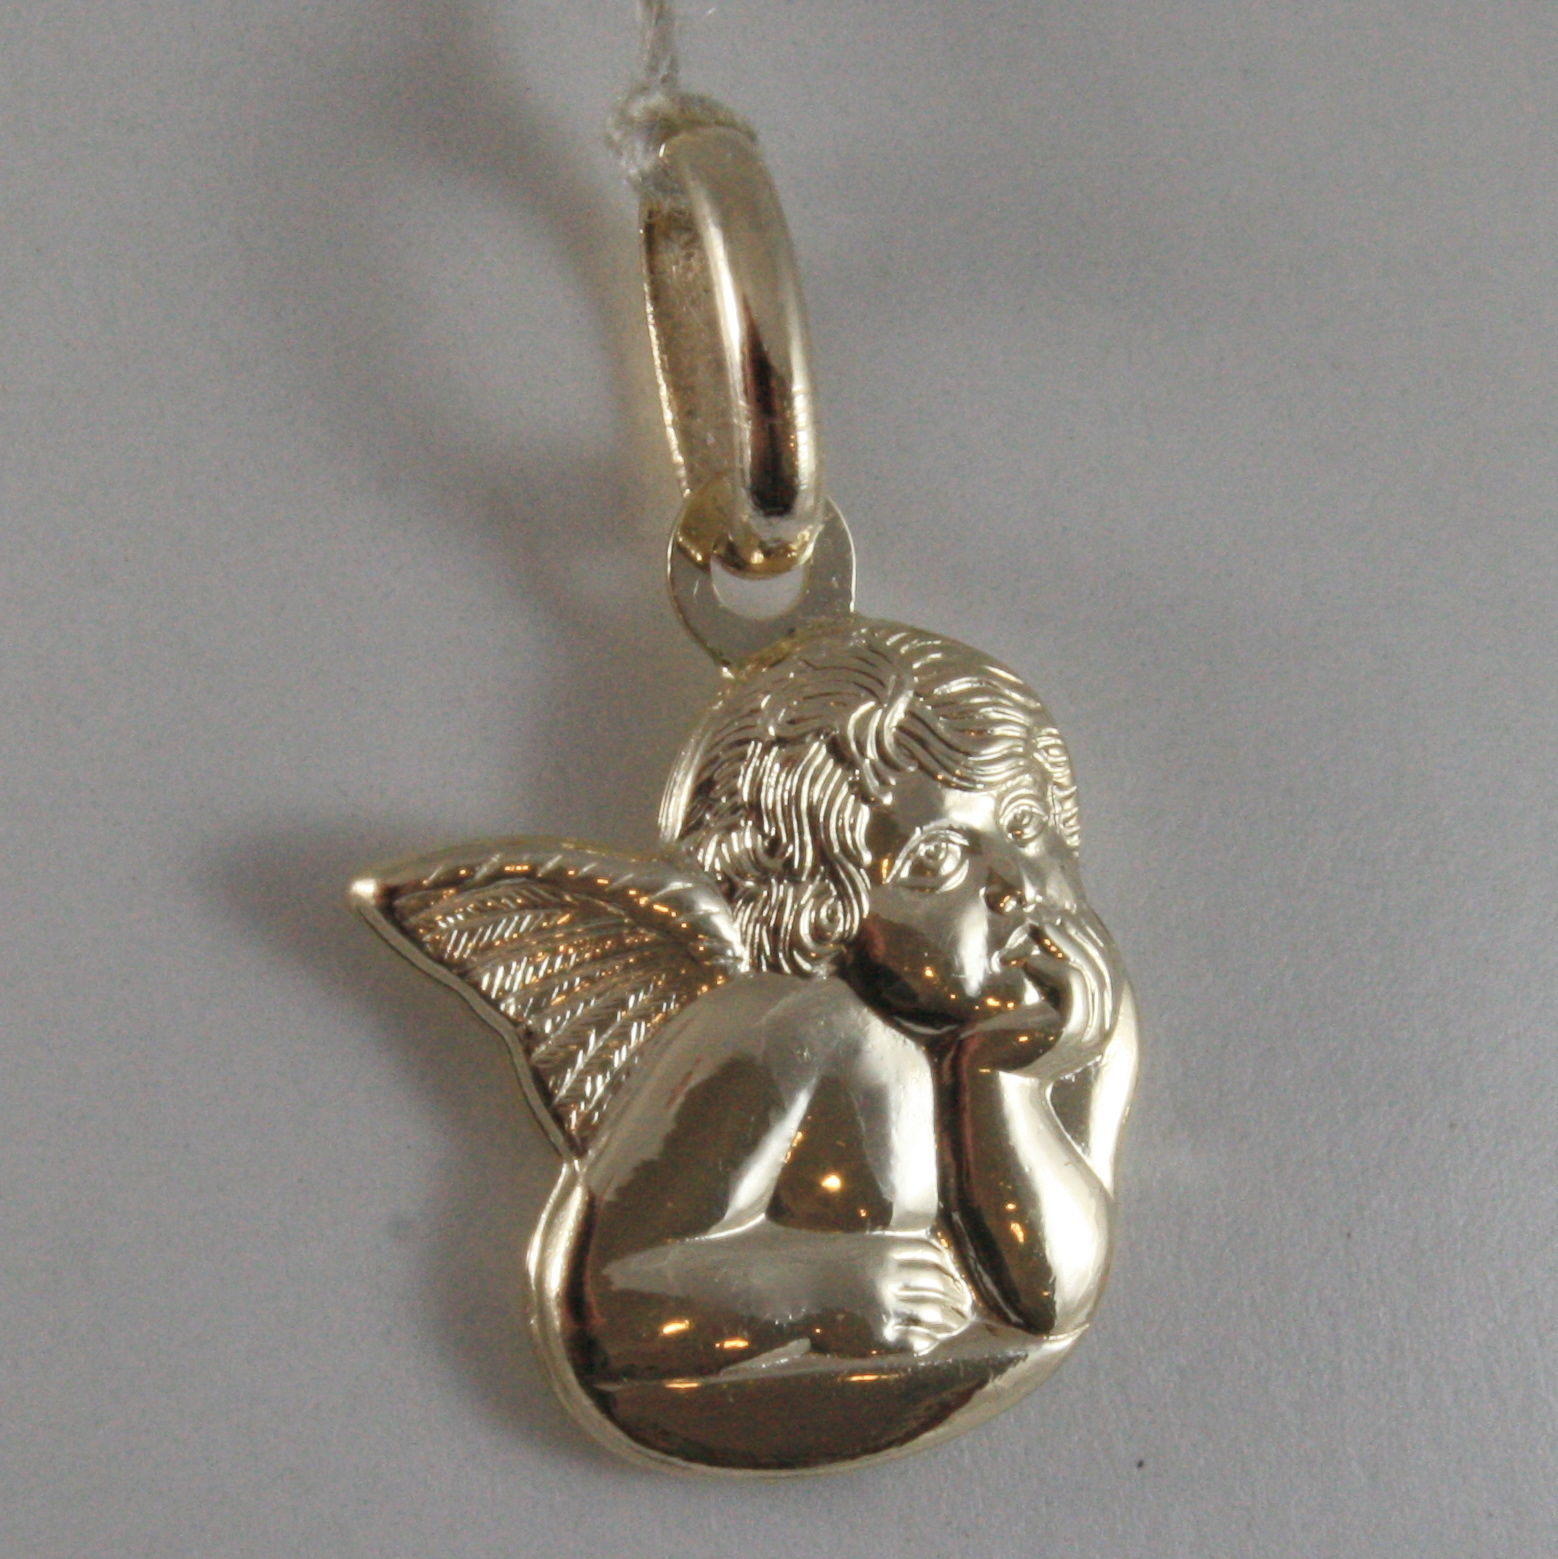 SOLID 9K YELLOW GOLD ANGEL PENDANT, STYLIZED, MADE IN ITALY, STYLISED, 9KT